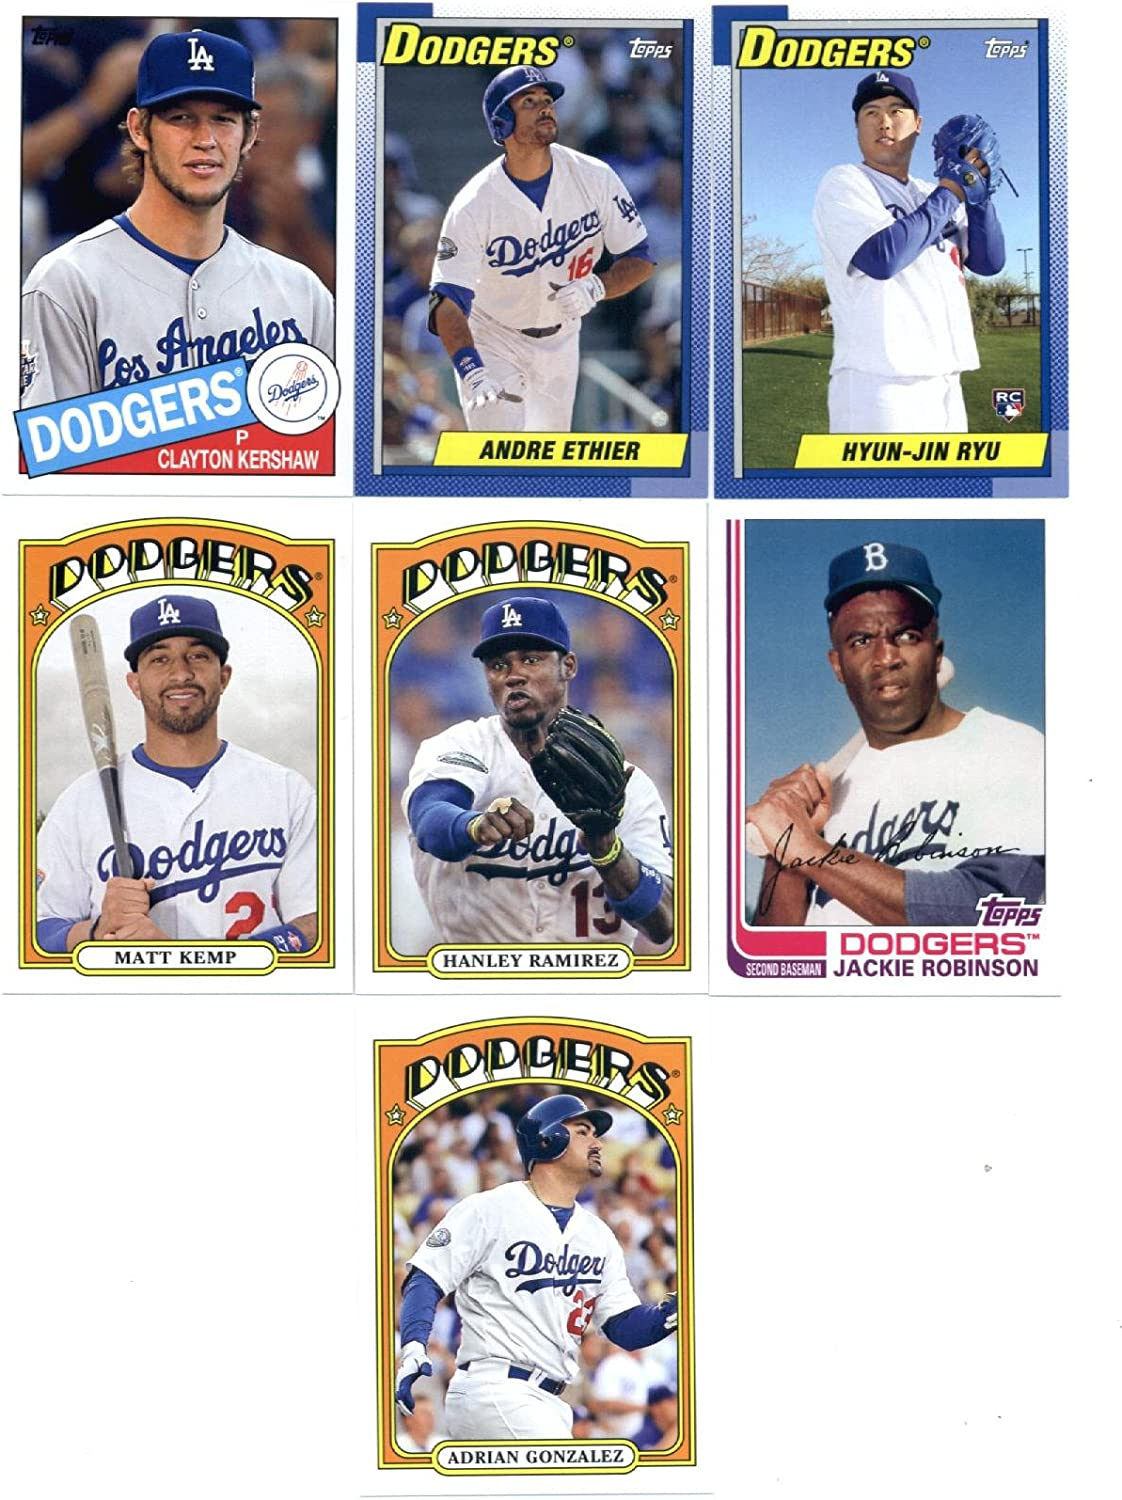 B00D64WZLY 2013 Topps Archives Baseball Cards Team Set - Los Angeles Dodgers (7 Cards) : Adrian Gonzalez Matt Kemp Hanley Ramirez Jackie Robinson Clayton Kershaw Hyun-Jin Ryu Andre Ethier 81y6udbRM8L